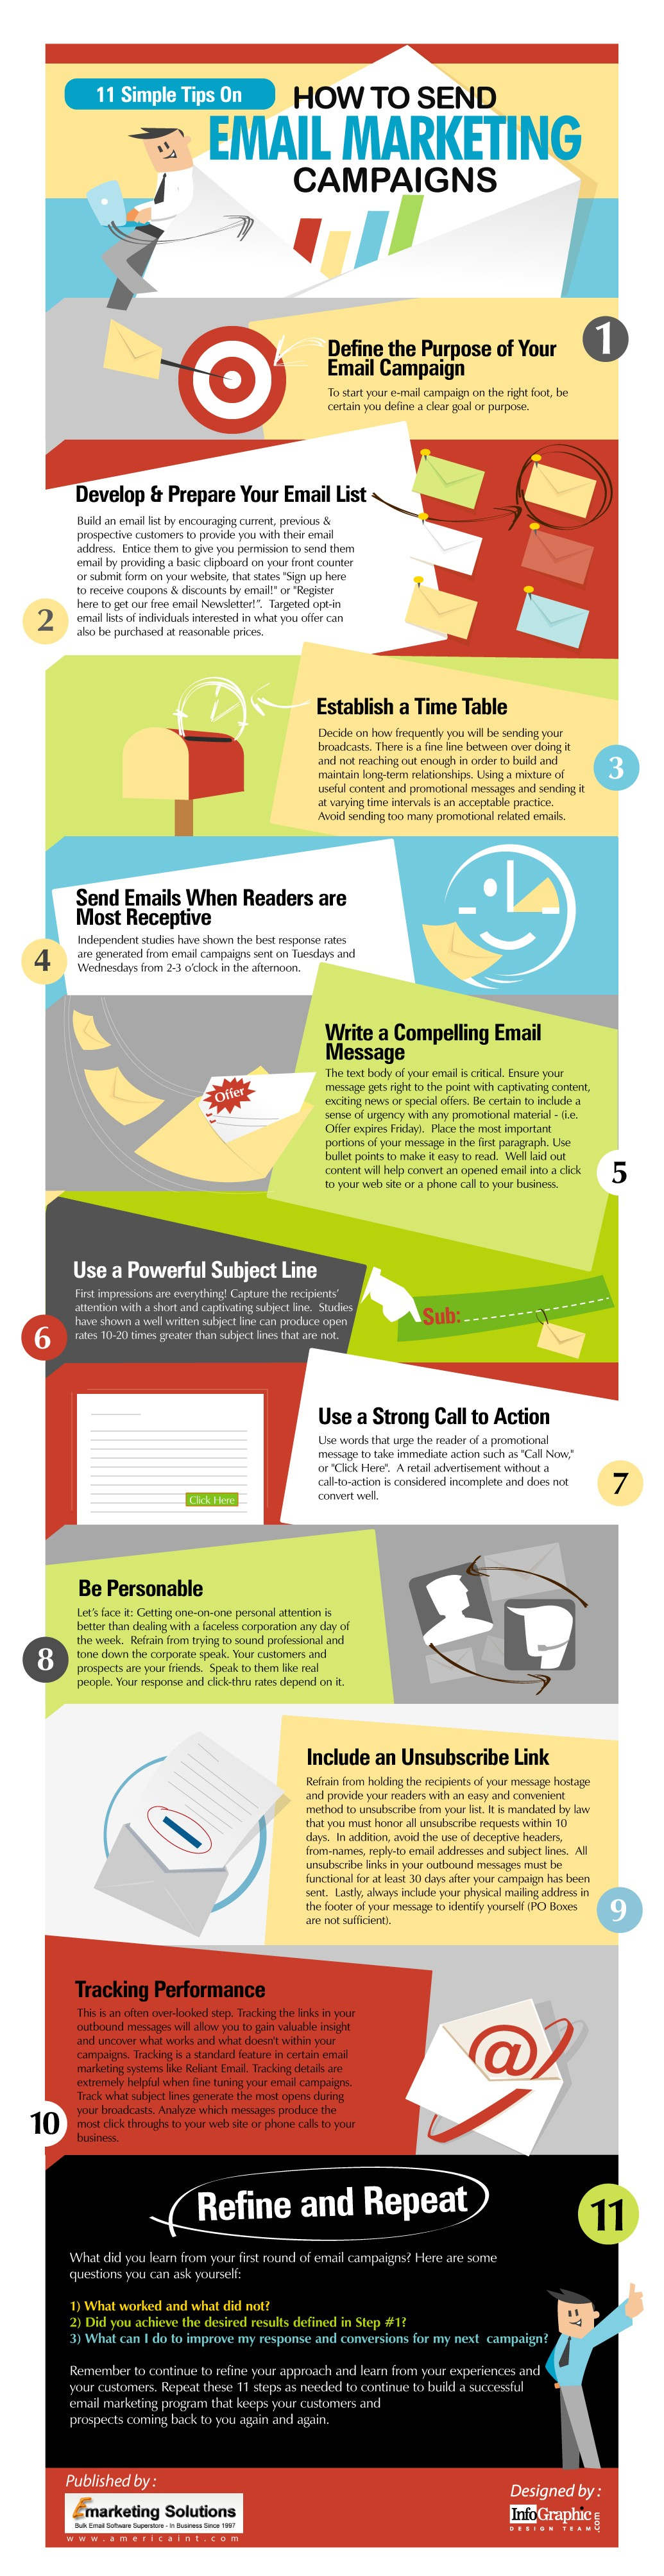 Tips on Email Marketing Campaign